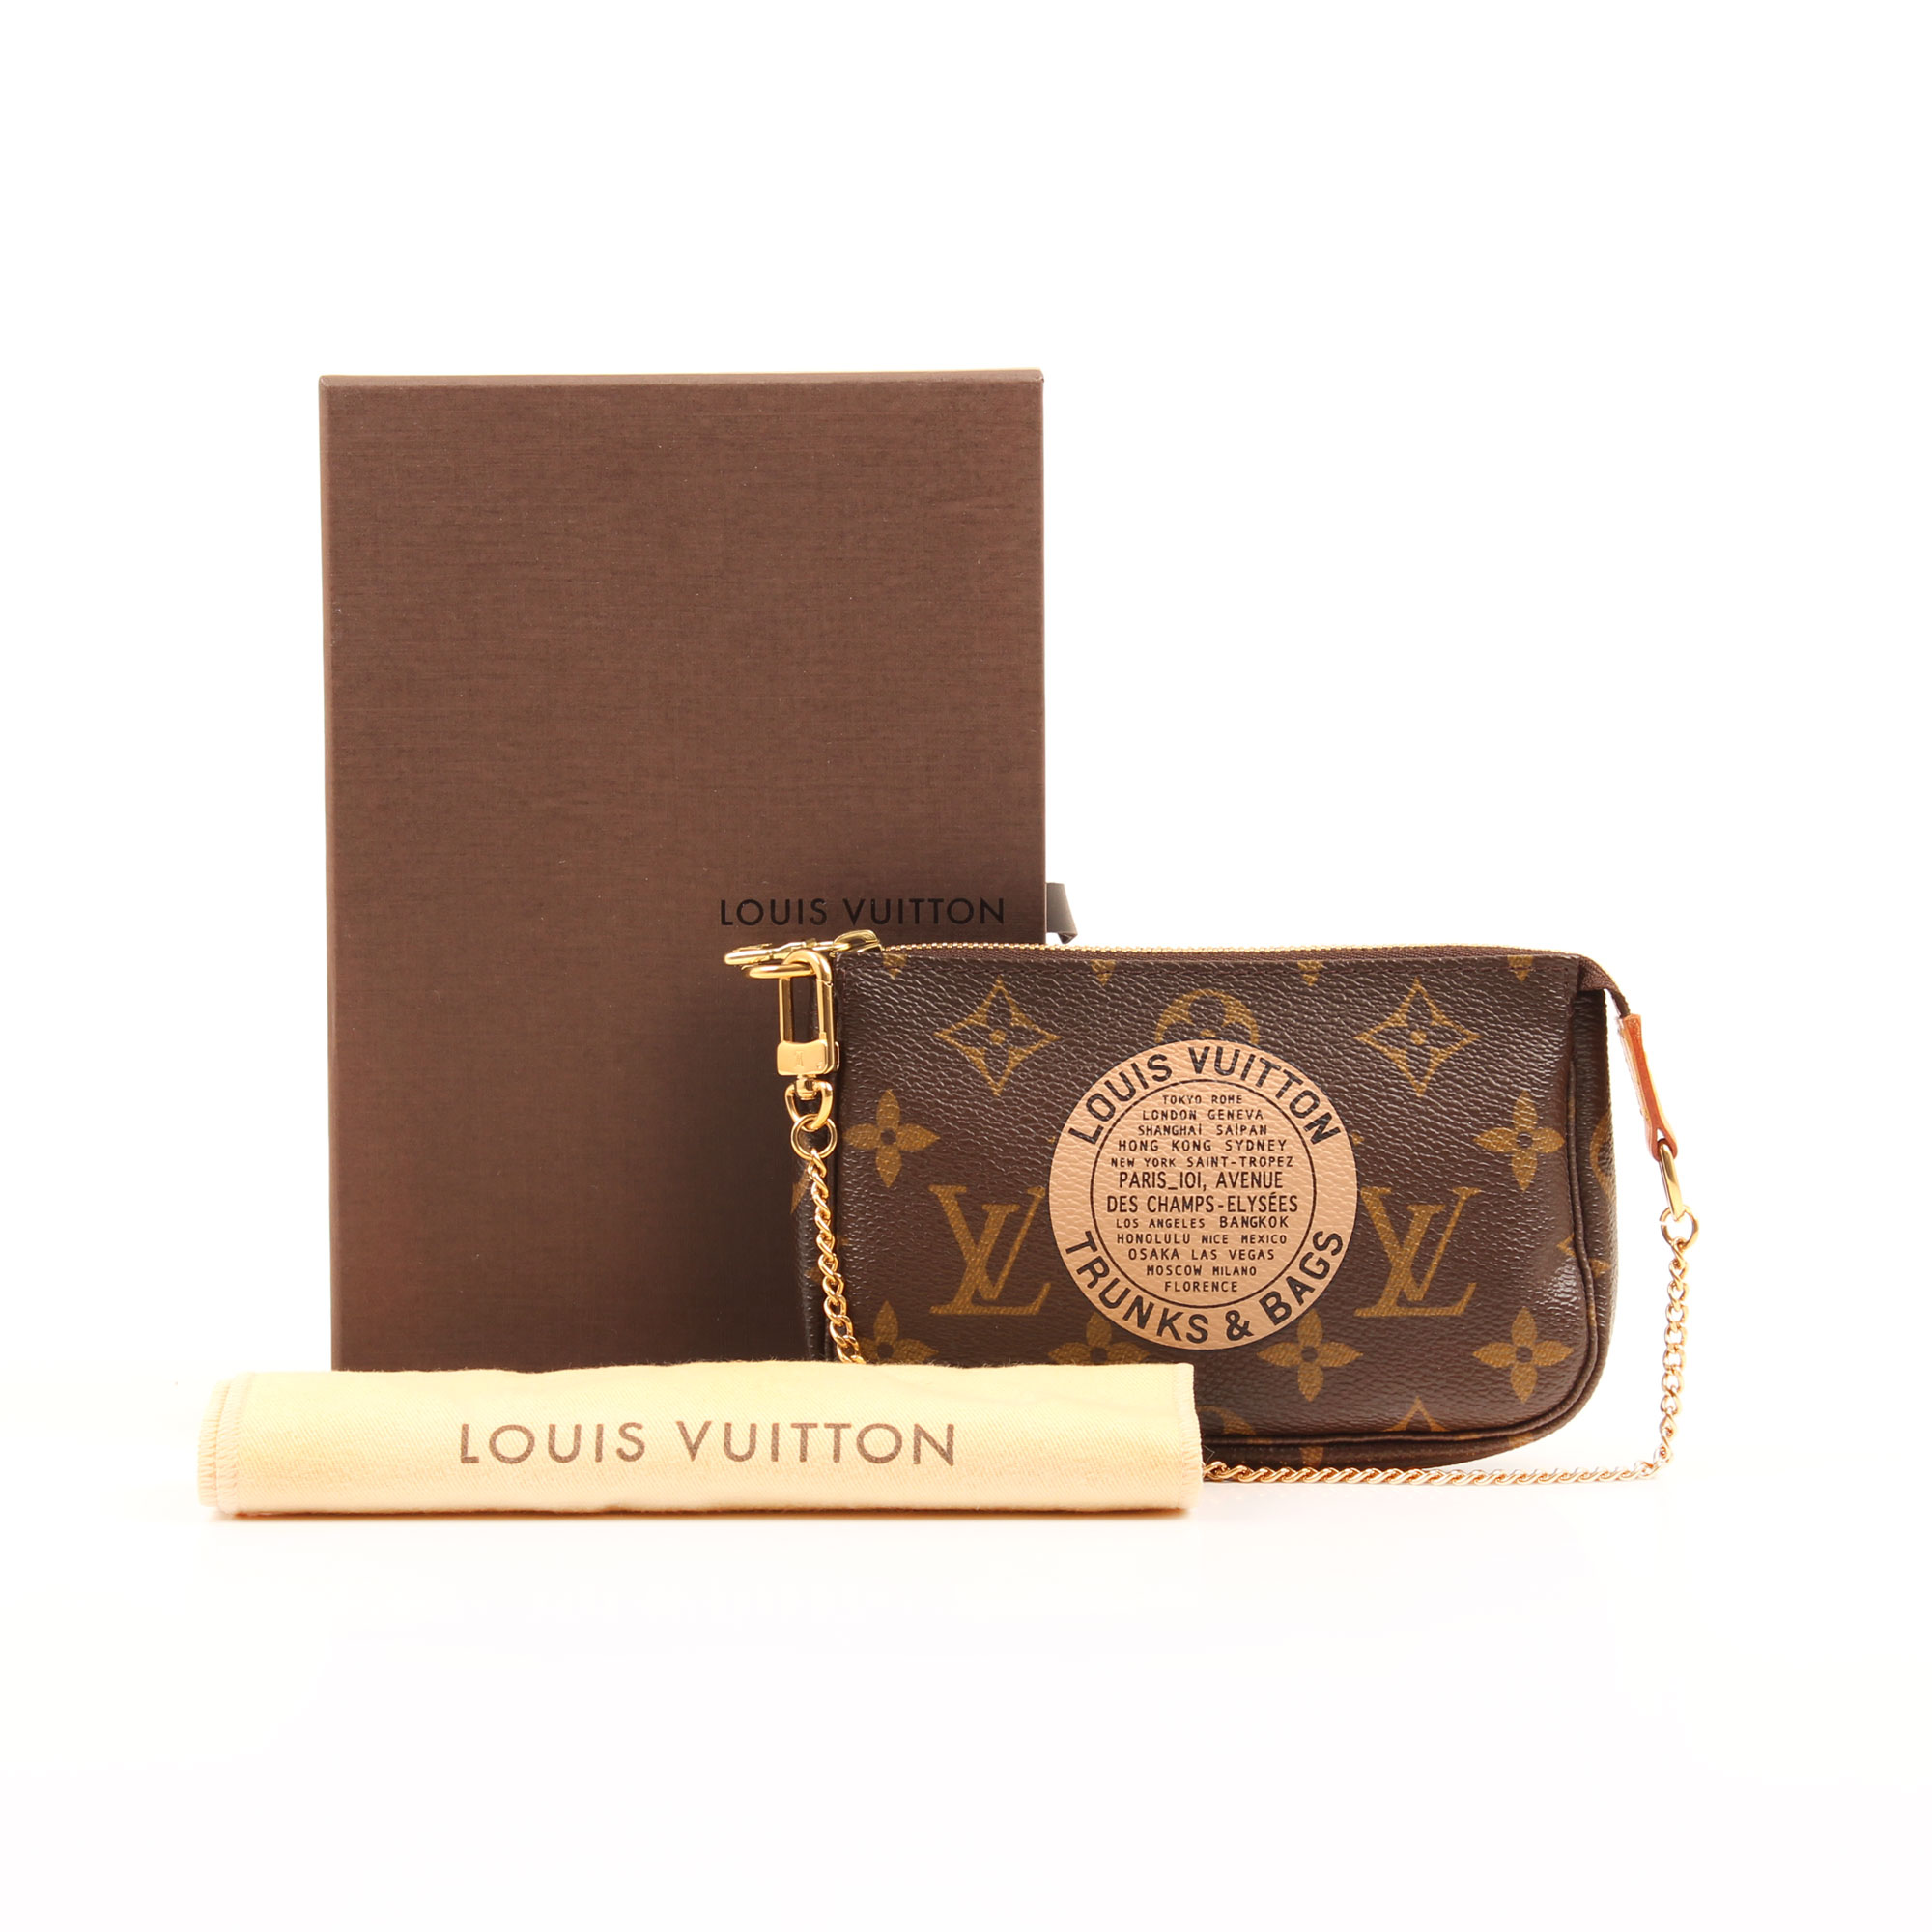 louis vuitton mini pochette accesoires bags trunks monogram caja funda